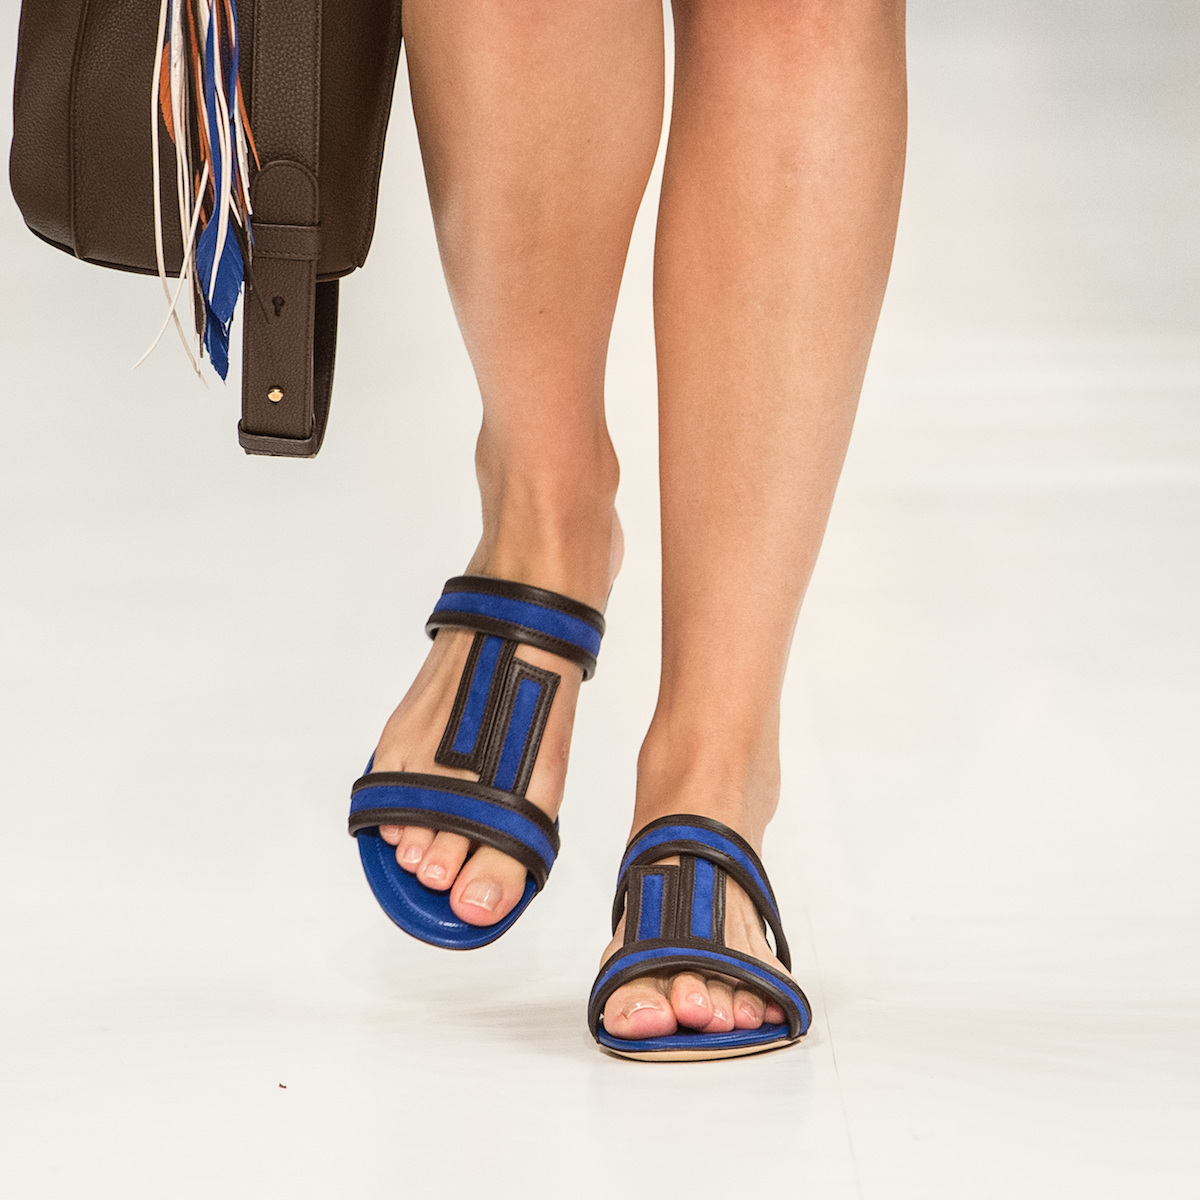 close-up-shoes-8.jpg